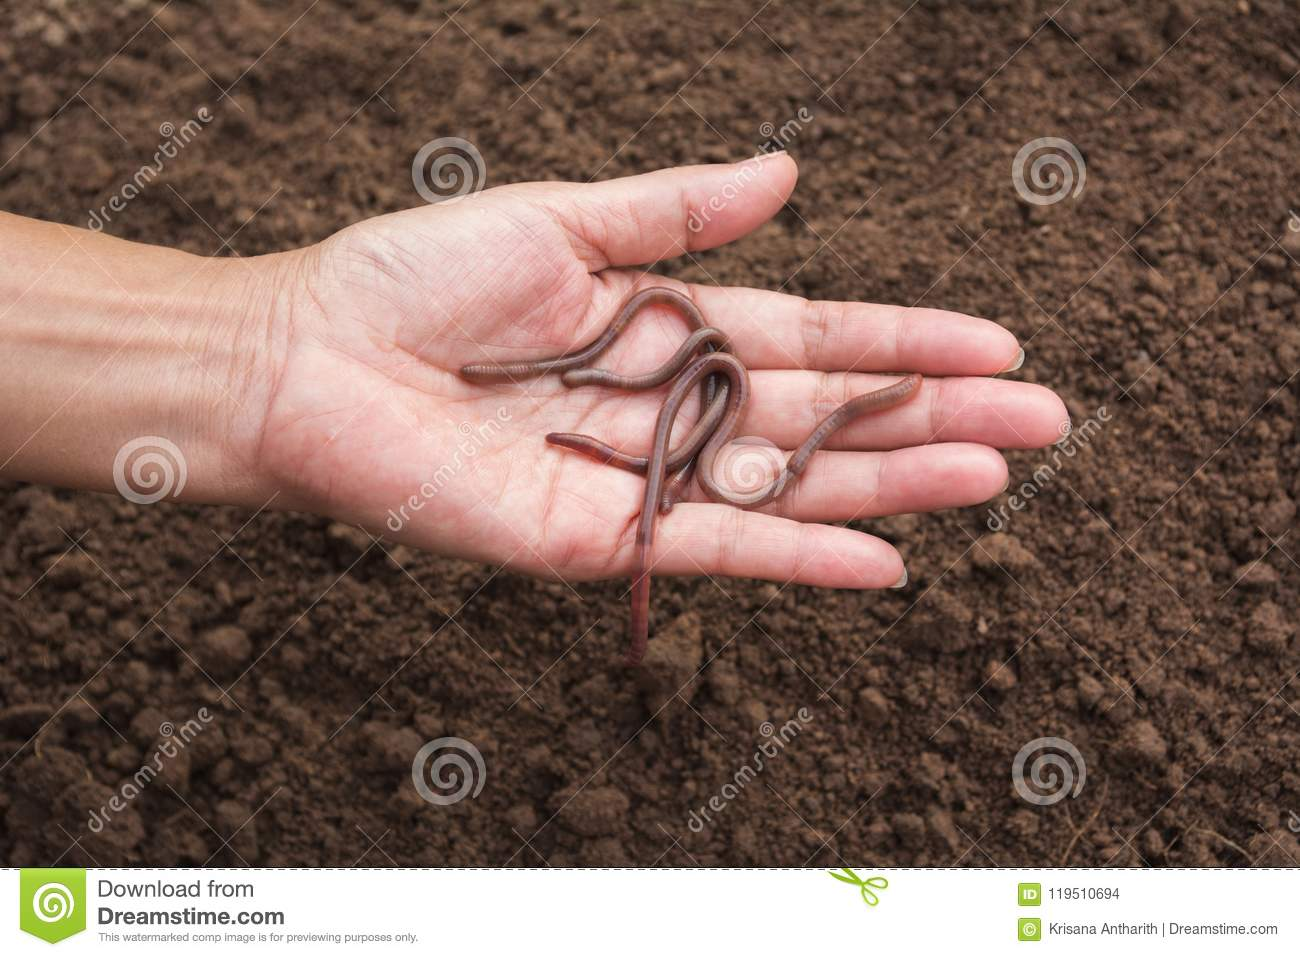 Female Hand Holding Earth Worms In Hands  Stock Photo - Image of